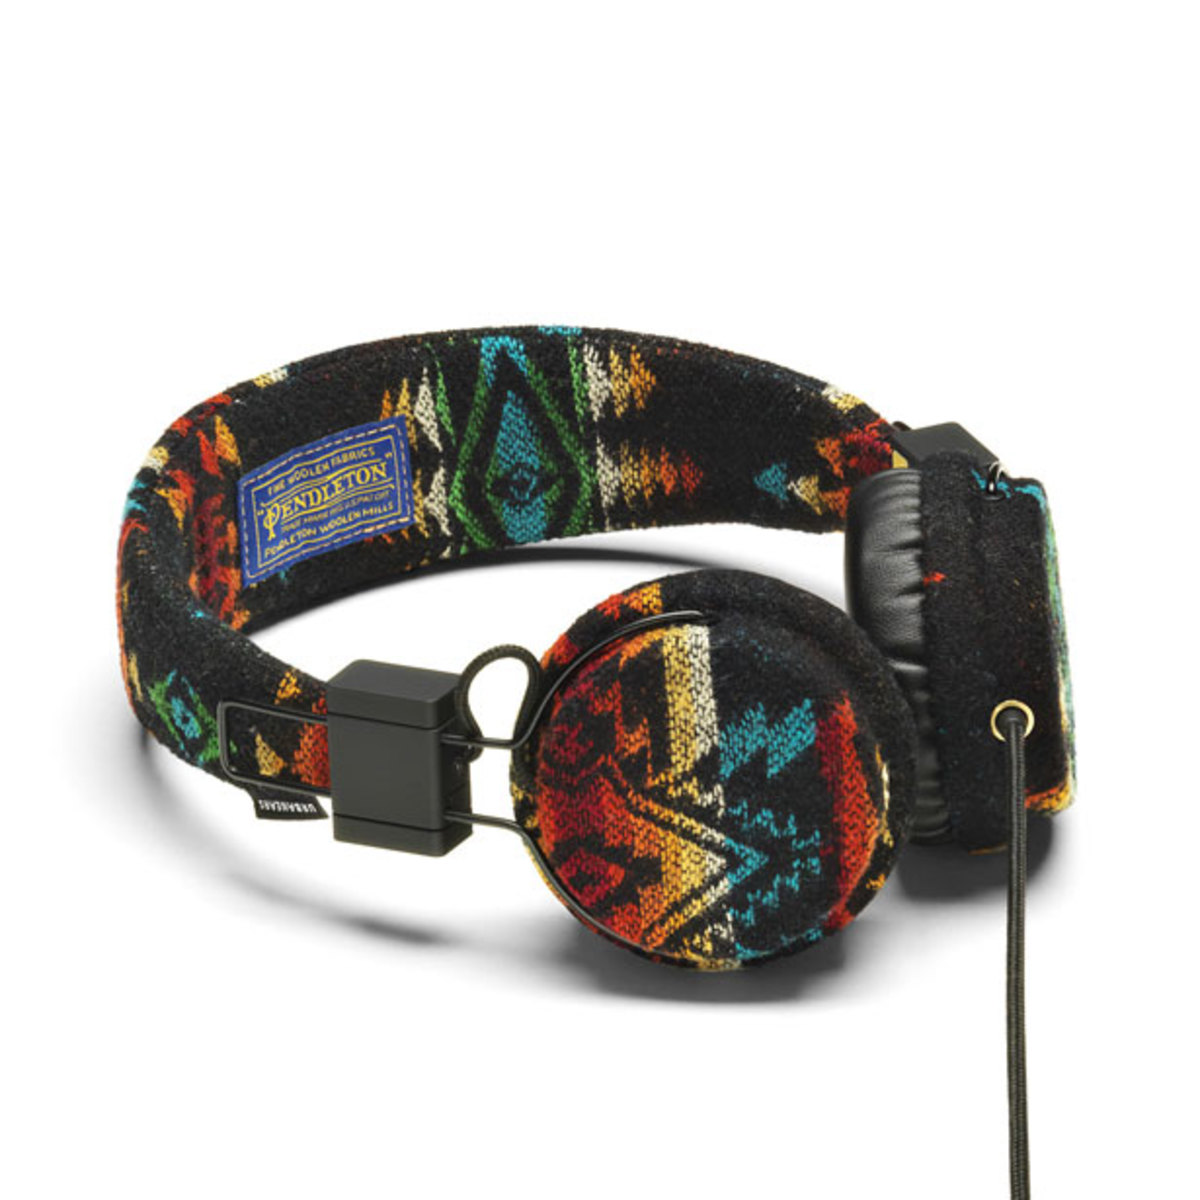 Style: Urbanears x Pendleton Collaboration - Win A Trip To Sweden